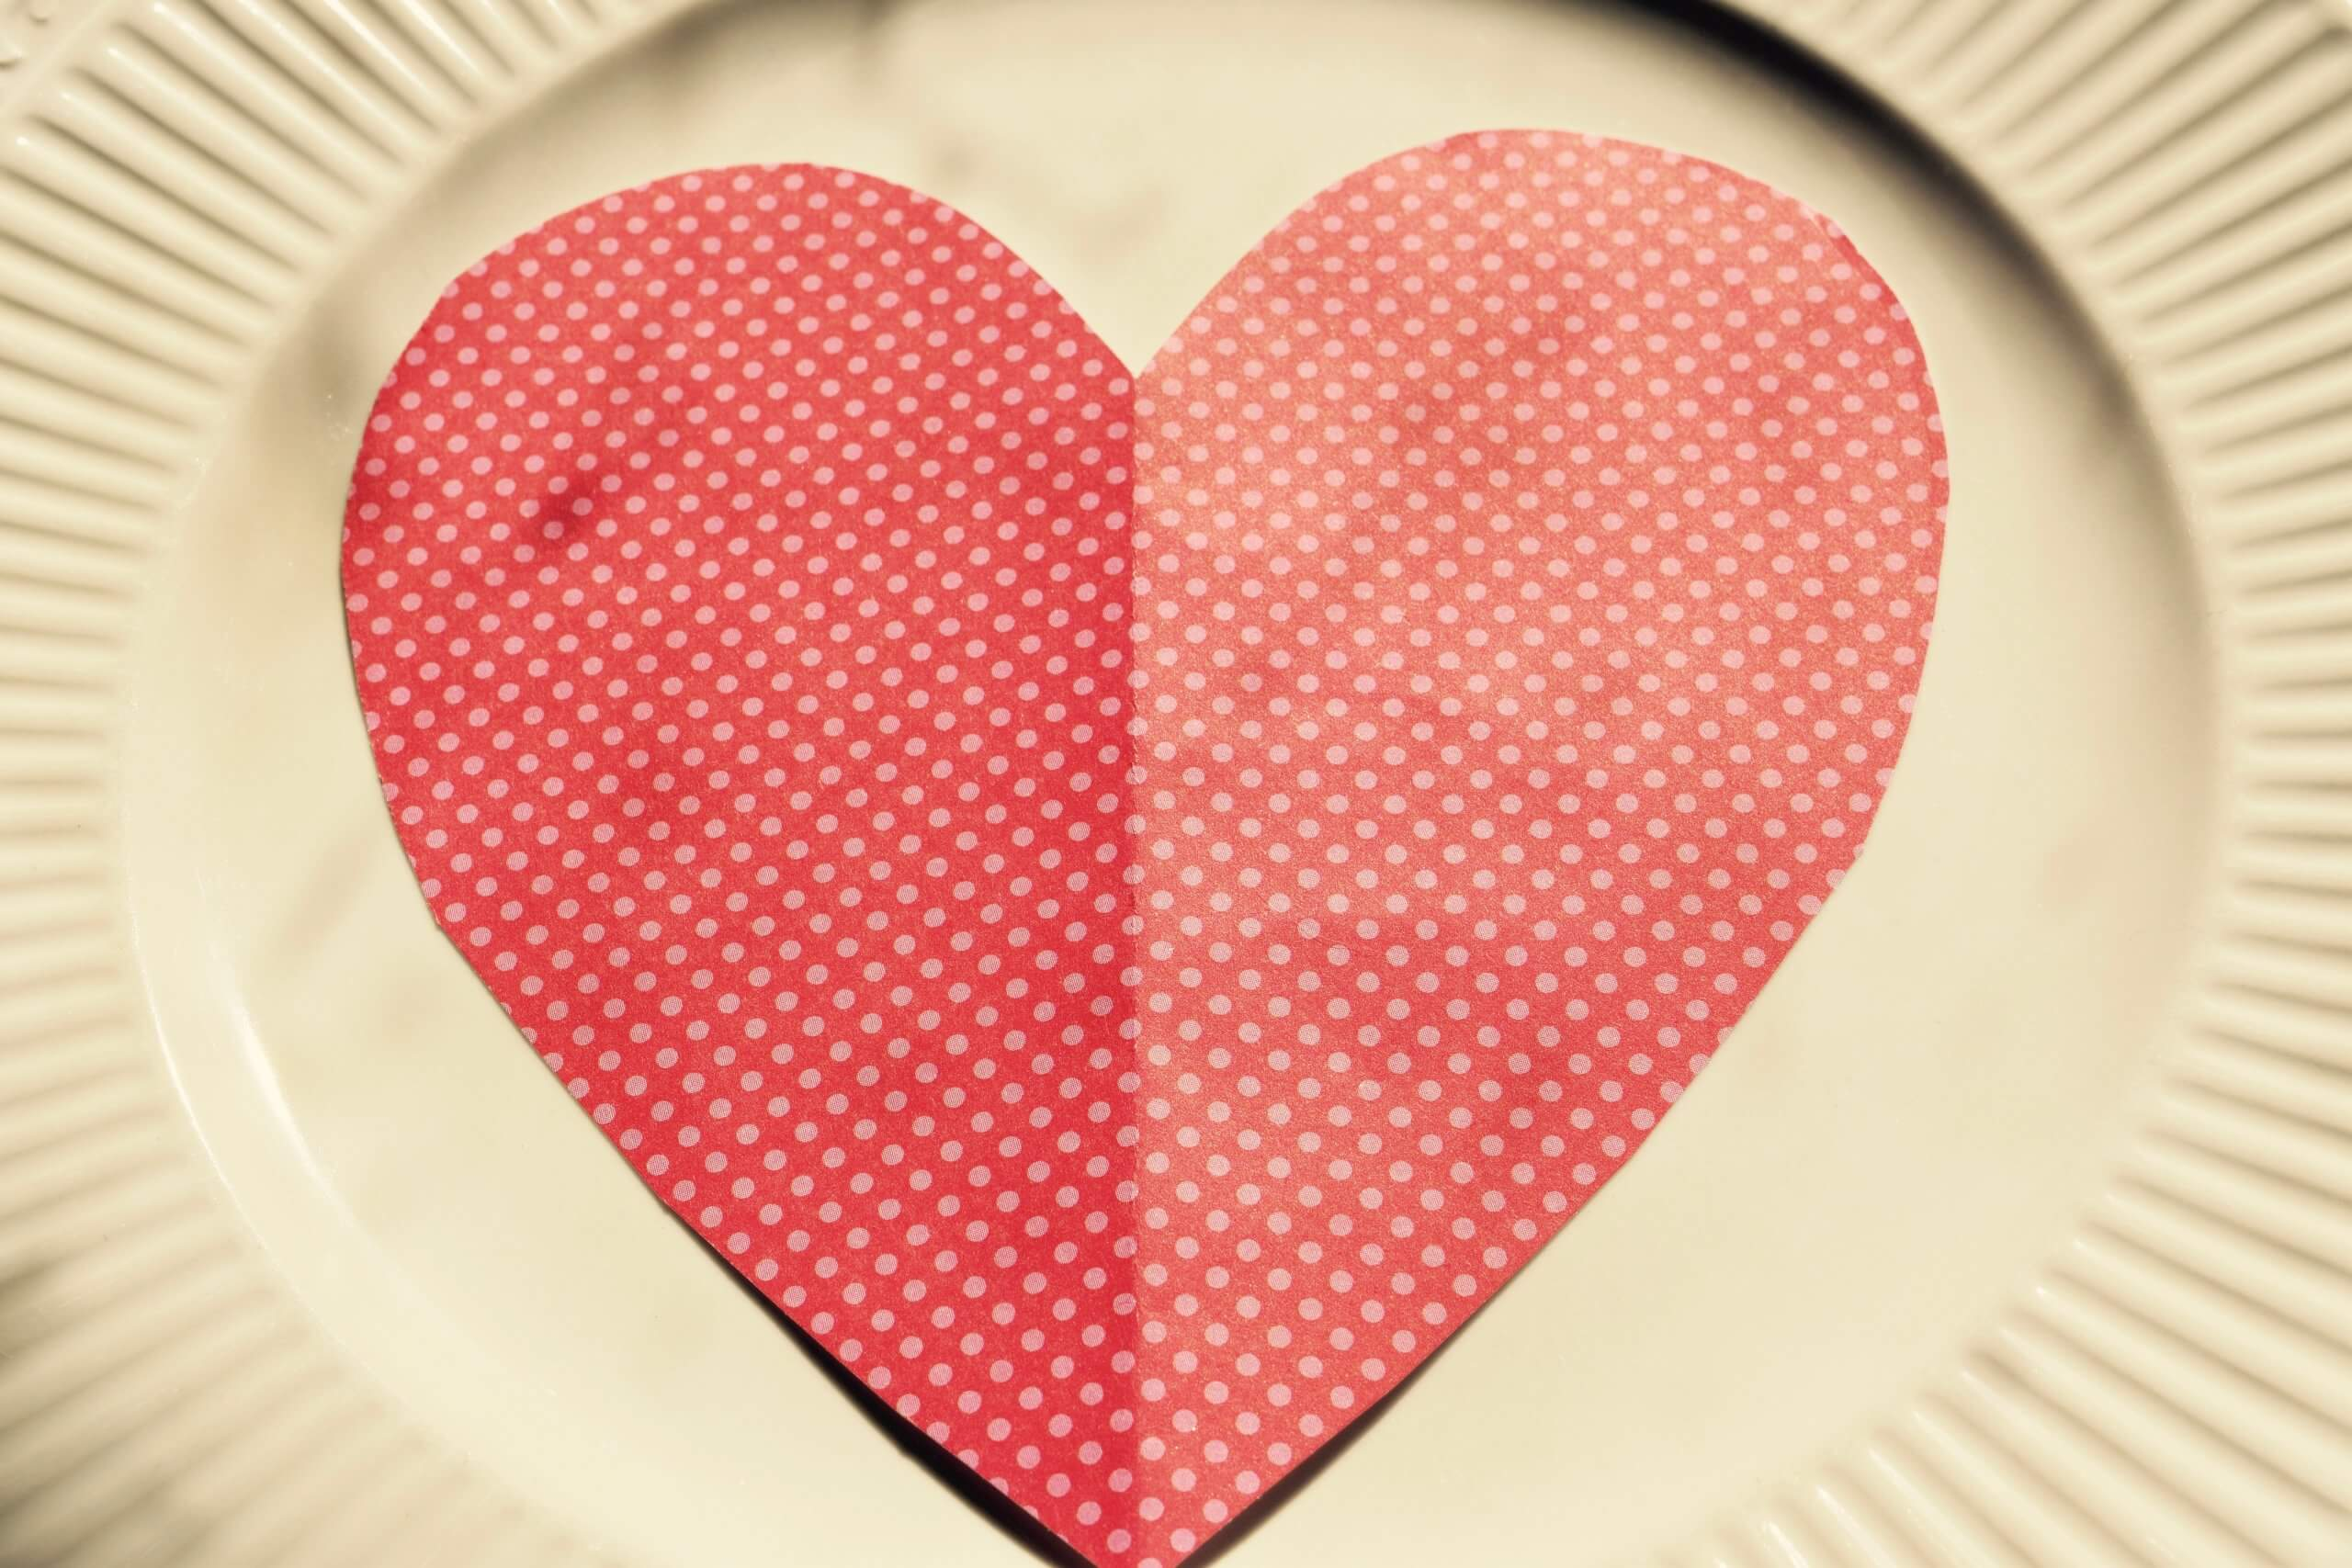 Red heart on plate